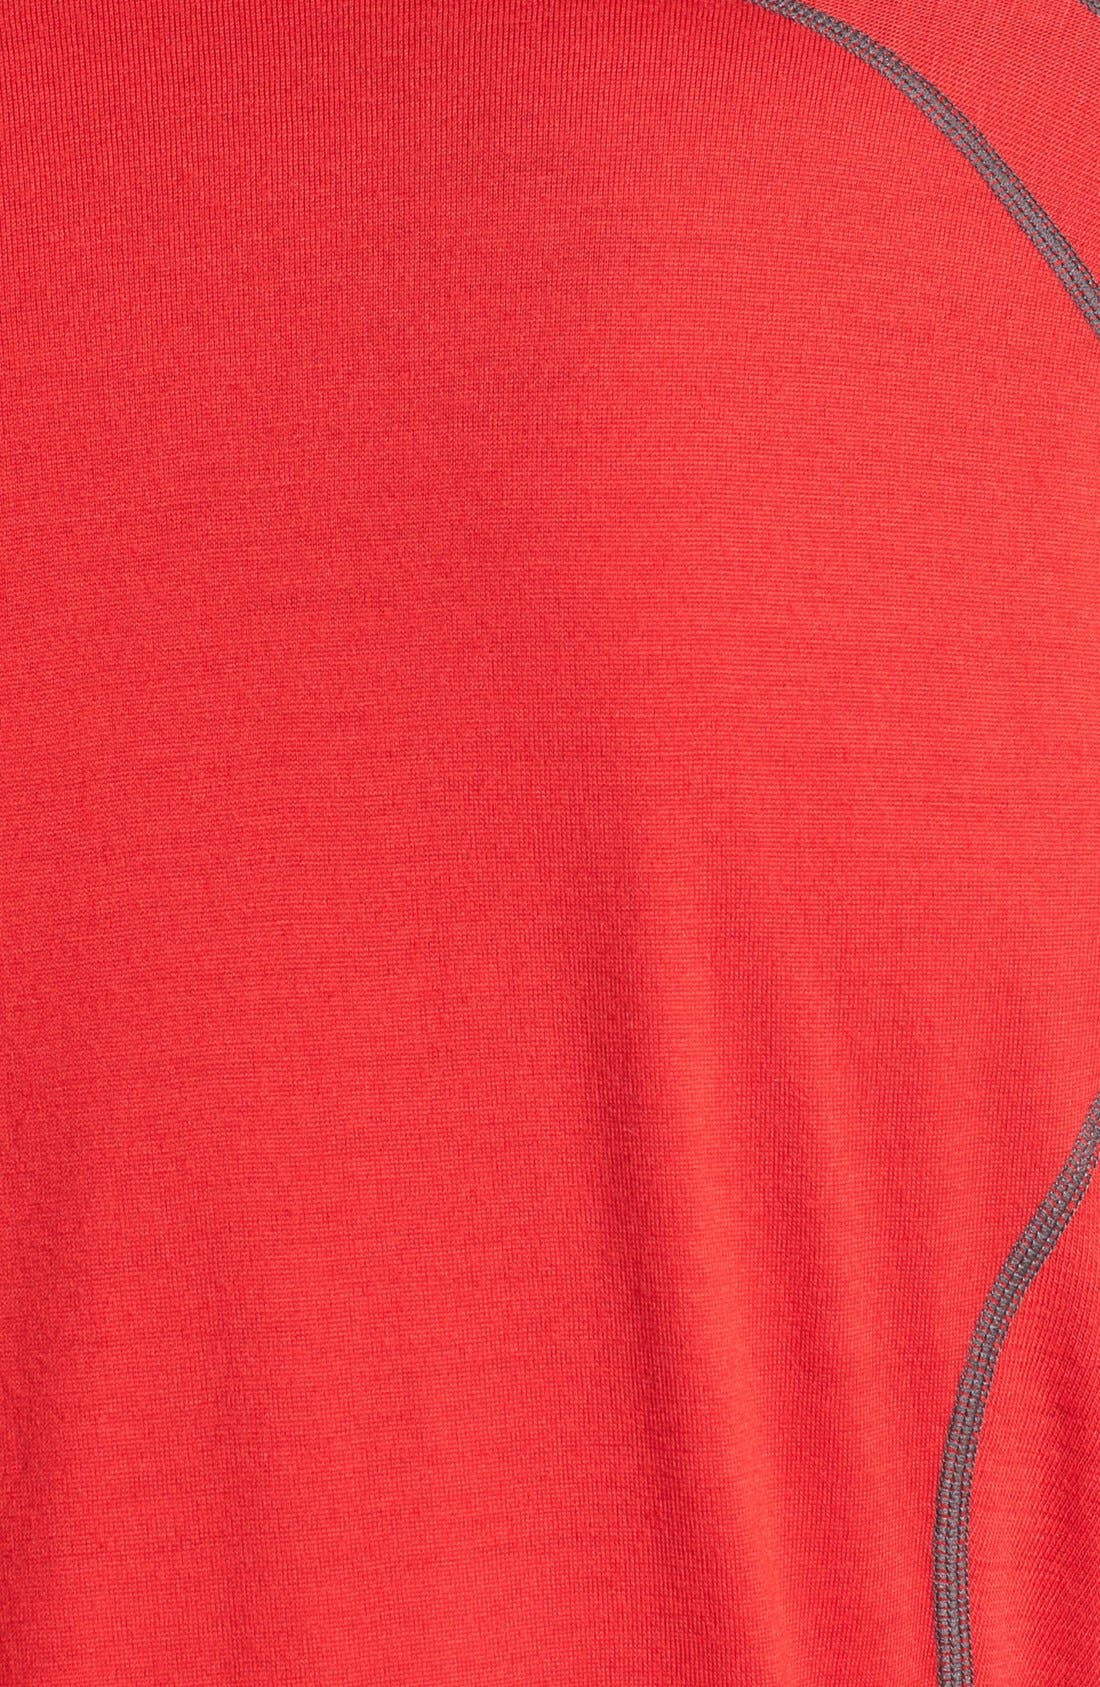 Alternate Image 3  - Smartwool Lightweight Long Sleeve Performance Top